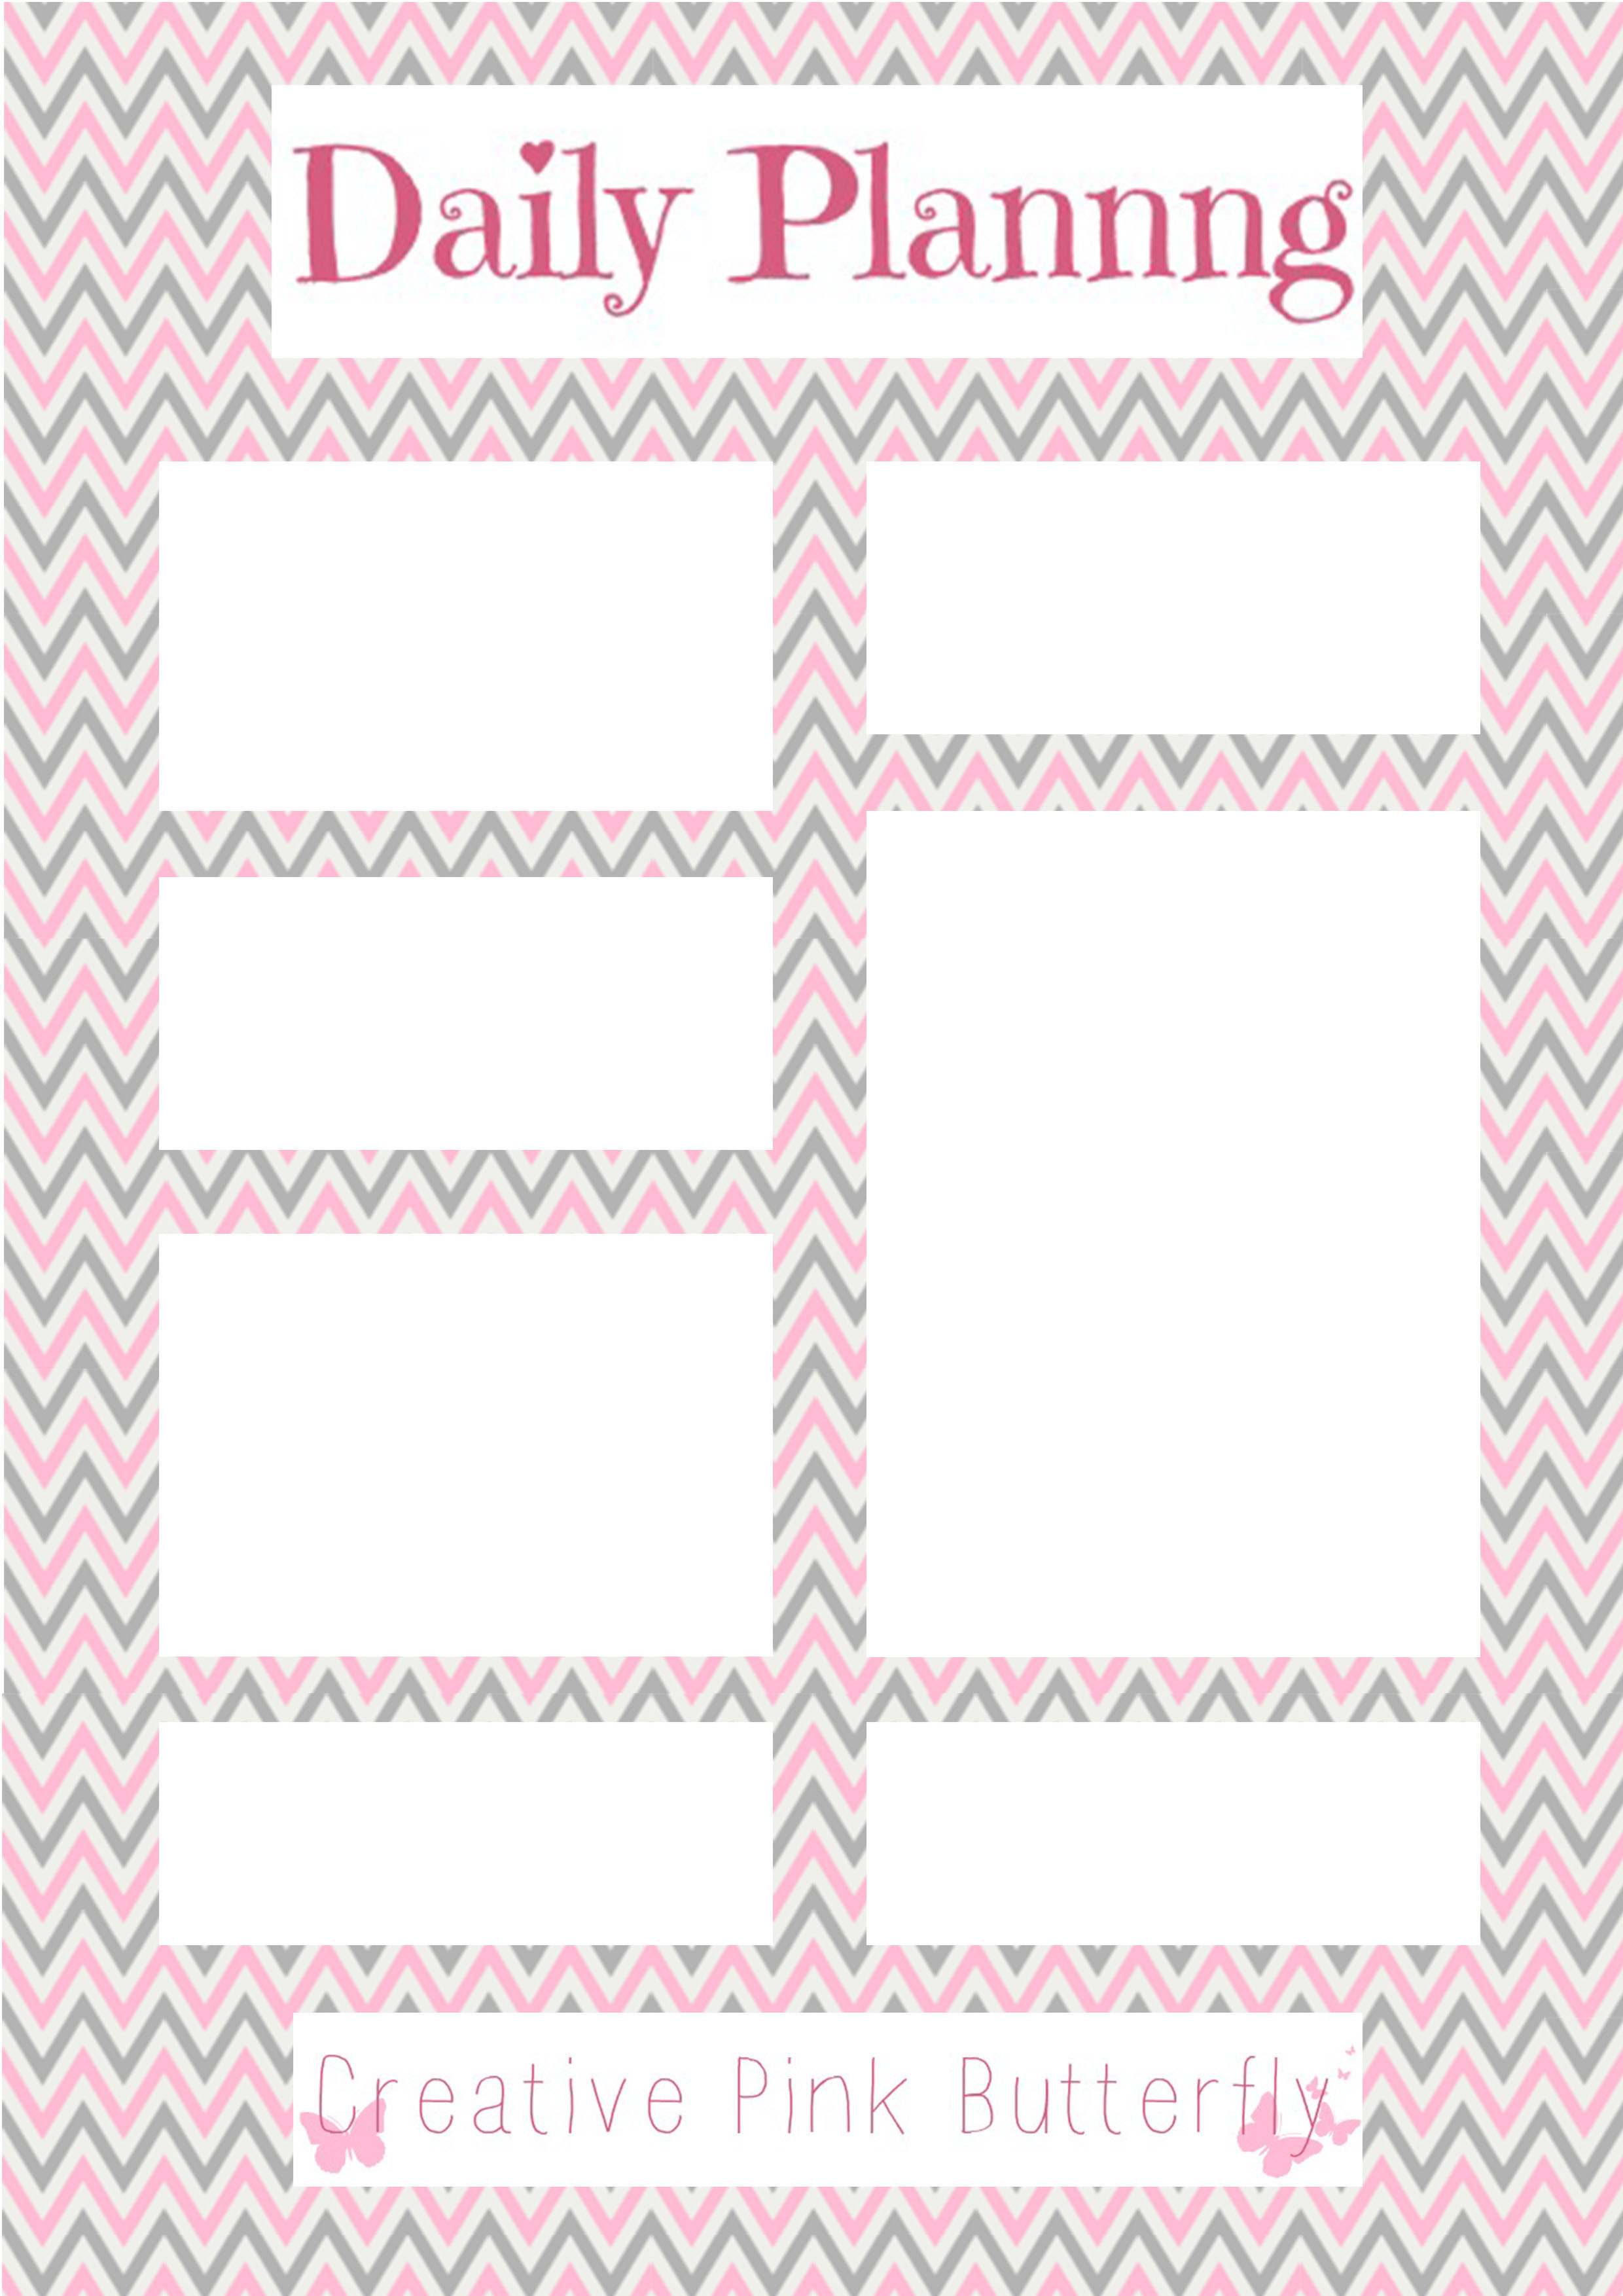 Daily Planner | Creative Pink Butterfly